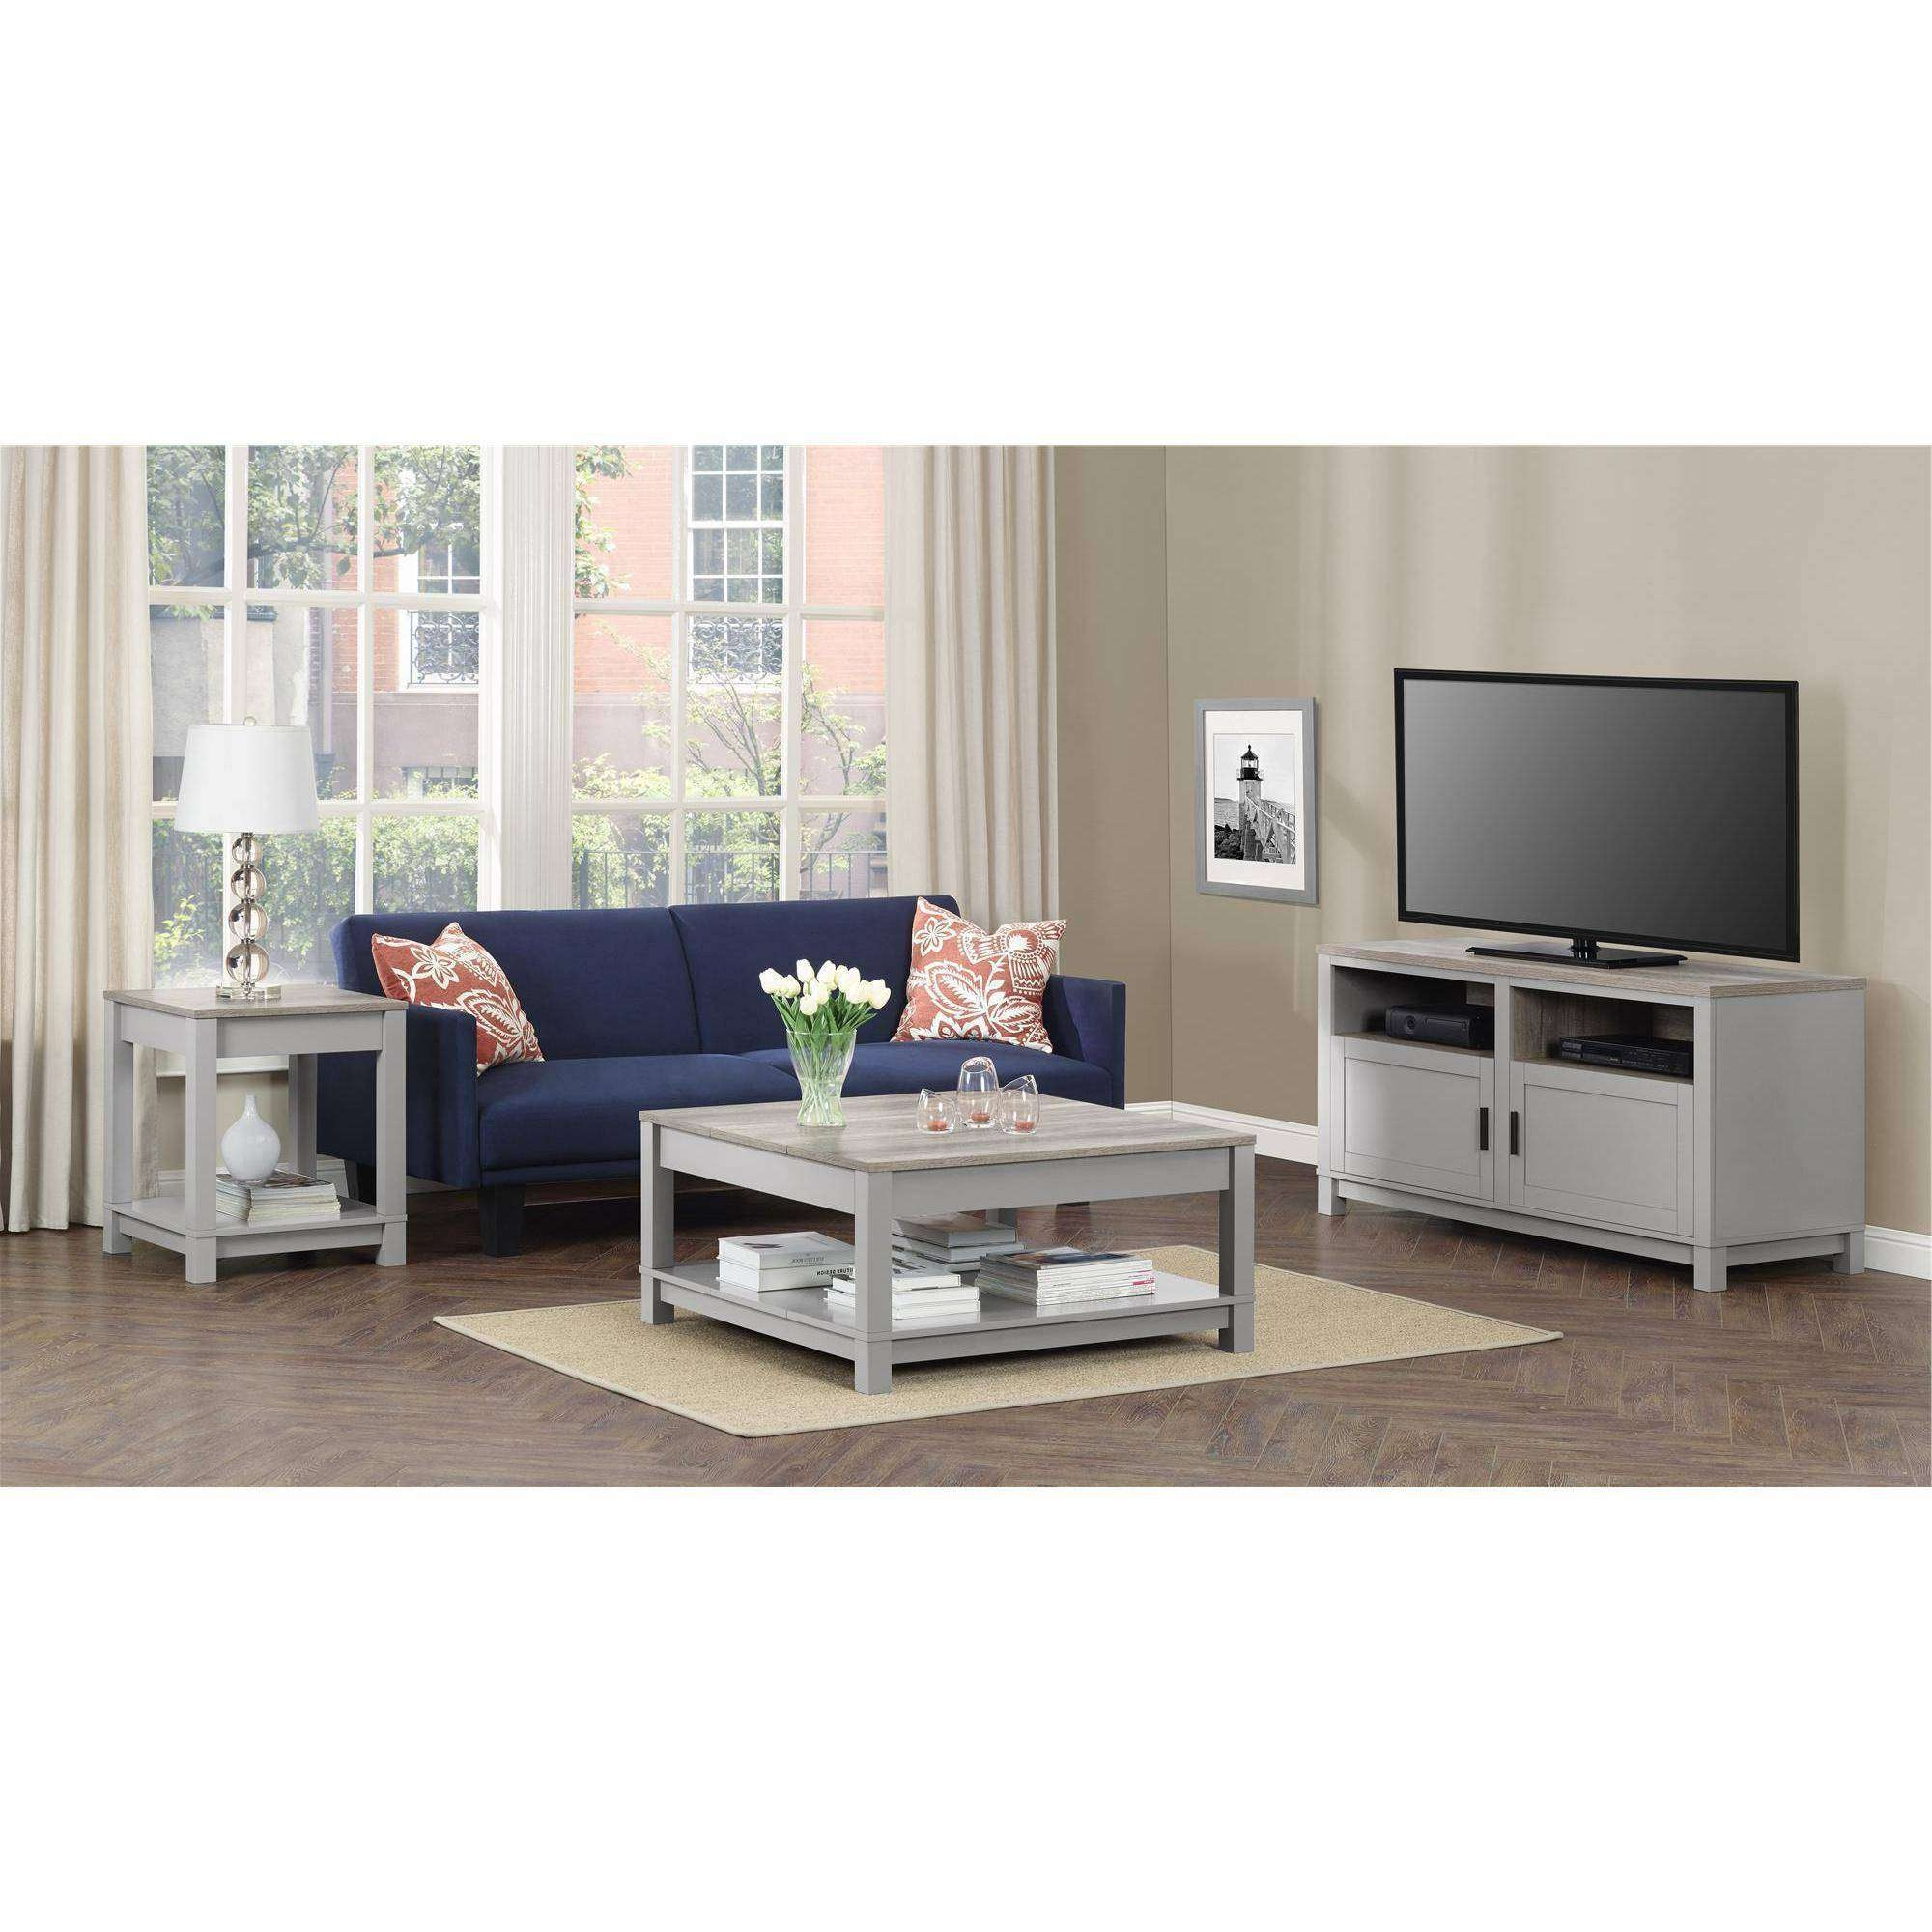 Best And Newest Tv Unit And Coffee Table Sets Pertaining To Coffee Tables  Cheap Coffee  sc 1 st  Home Interior \u0026 Exterior Design Ideas & 20 Photos Tv Unit And Coffee Table Sets